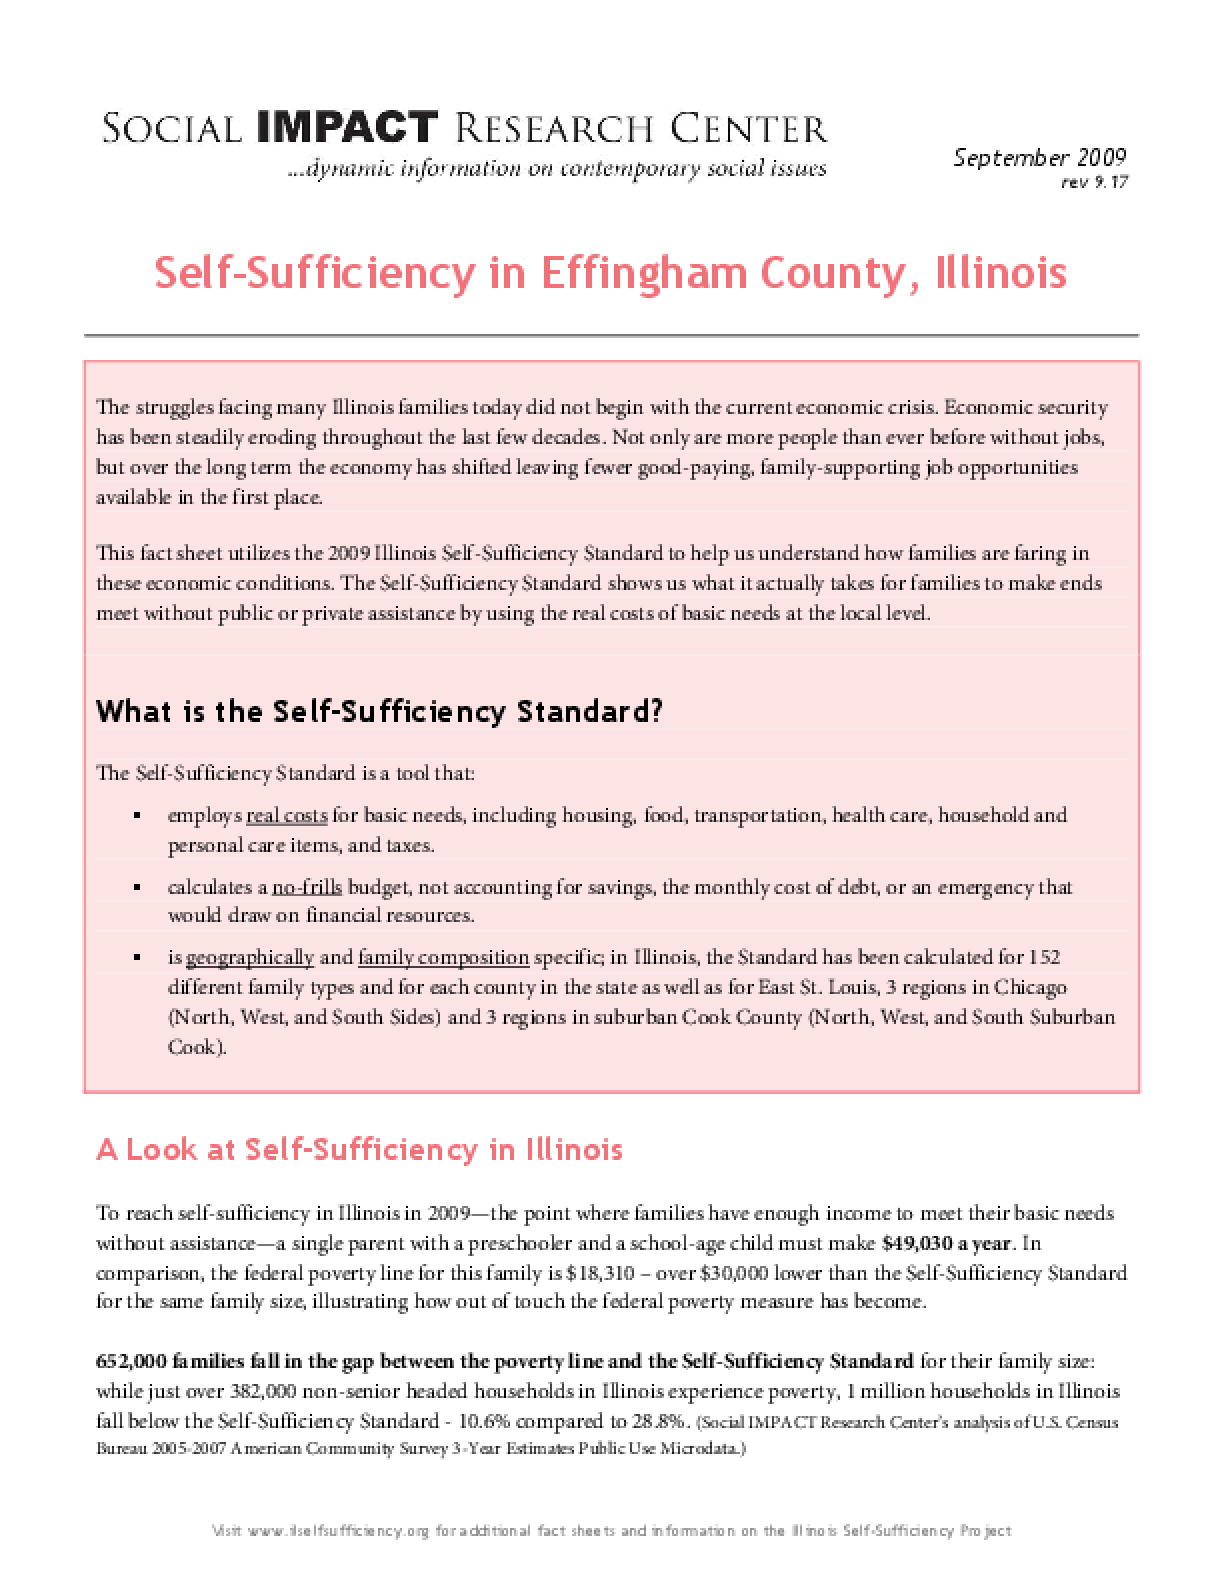 Self-Sufficiency in Effingham County, Illinois